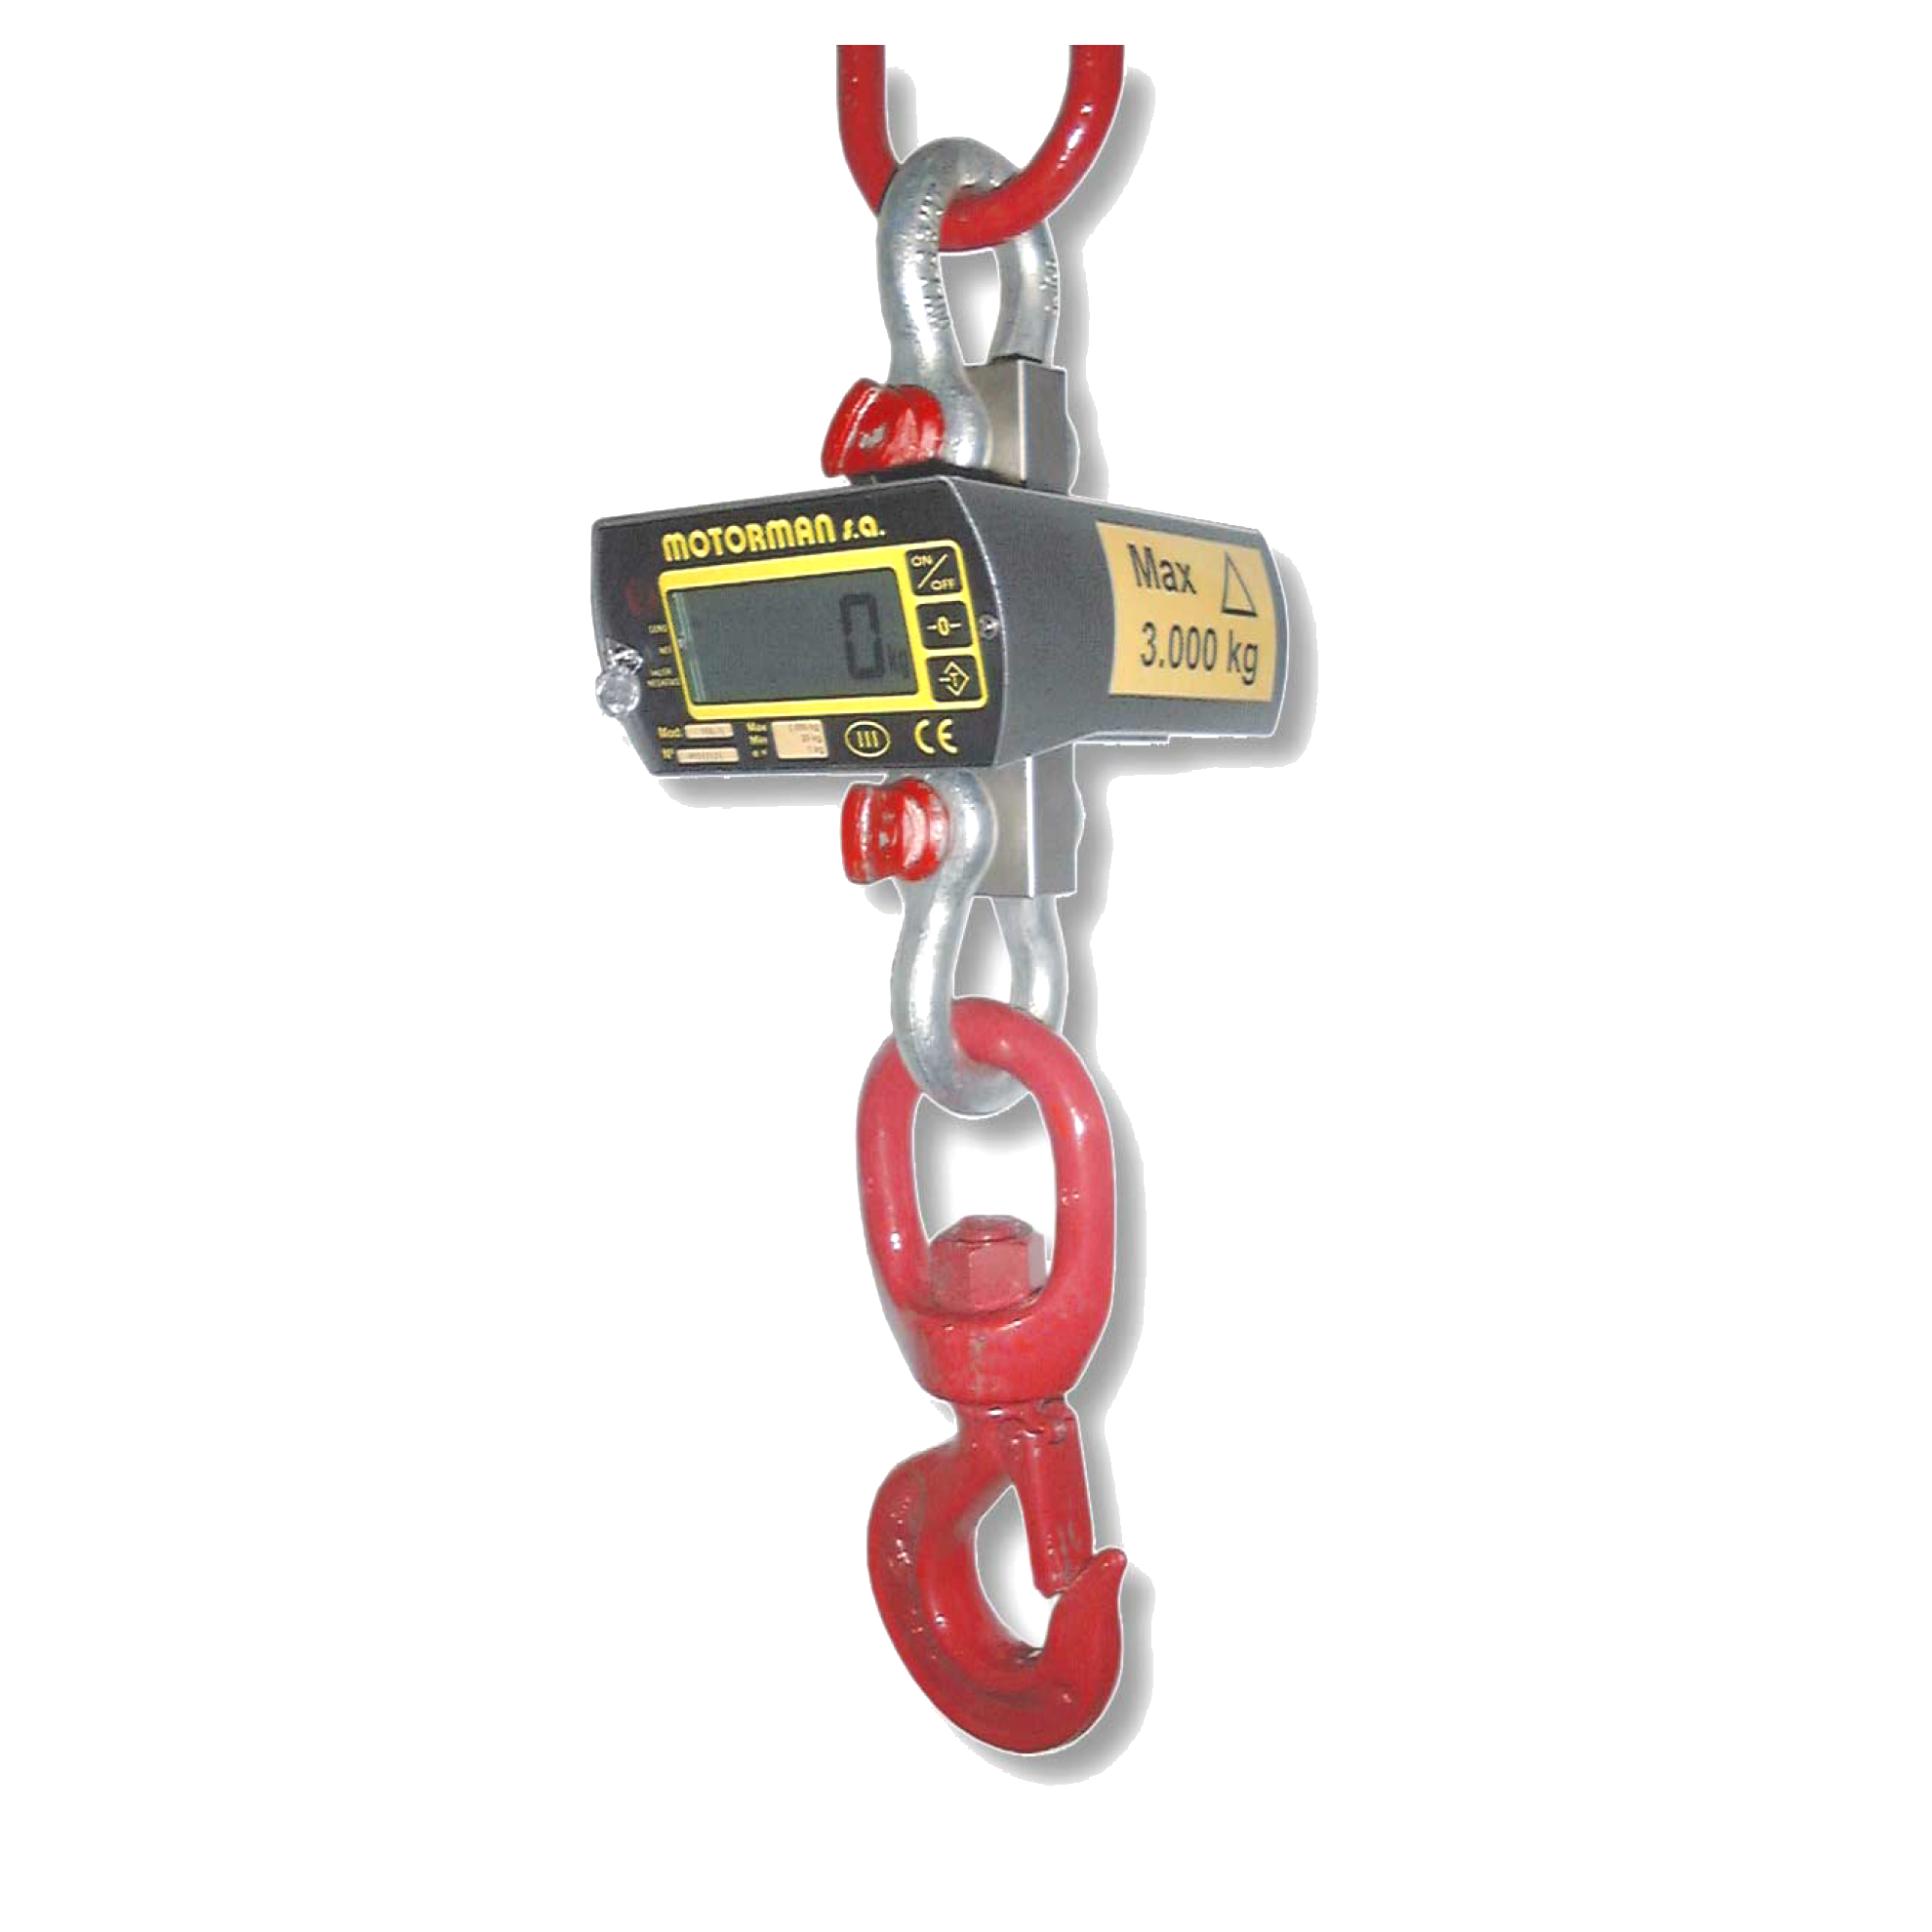 MK/X weighing hook